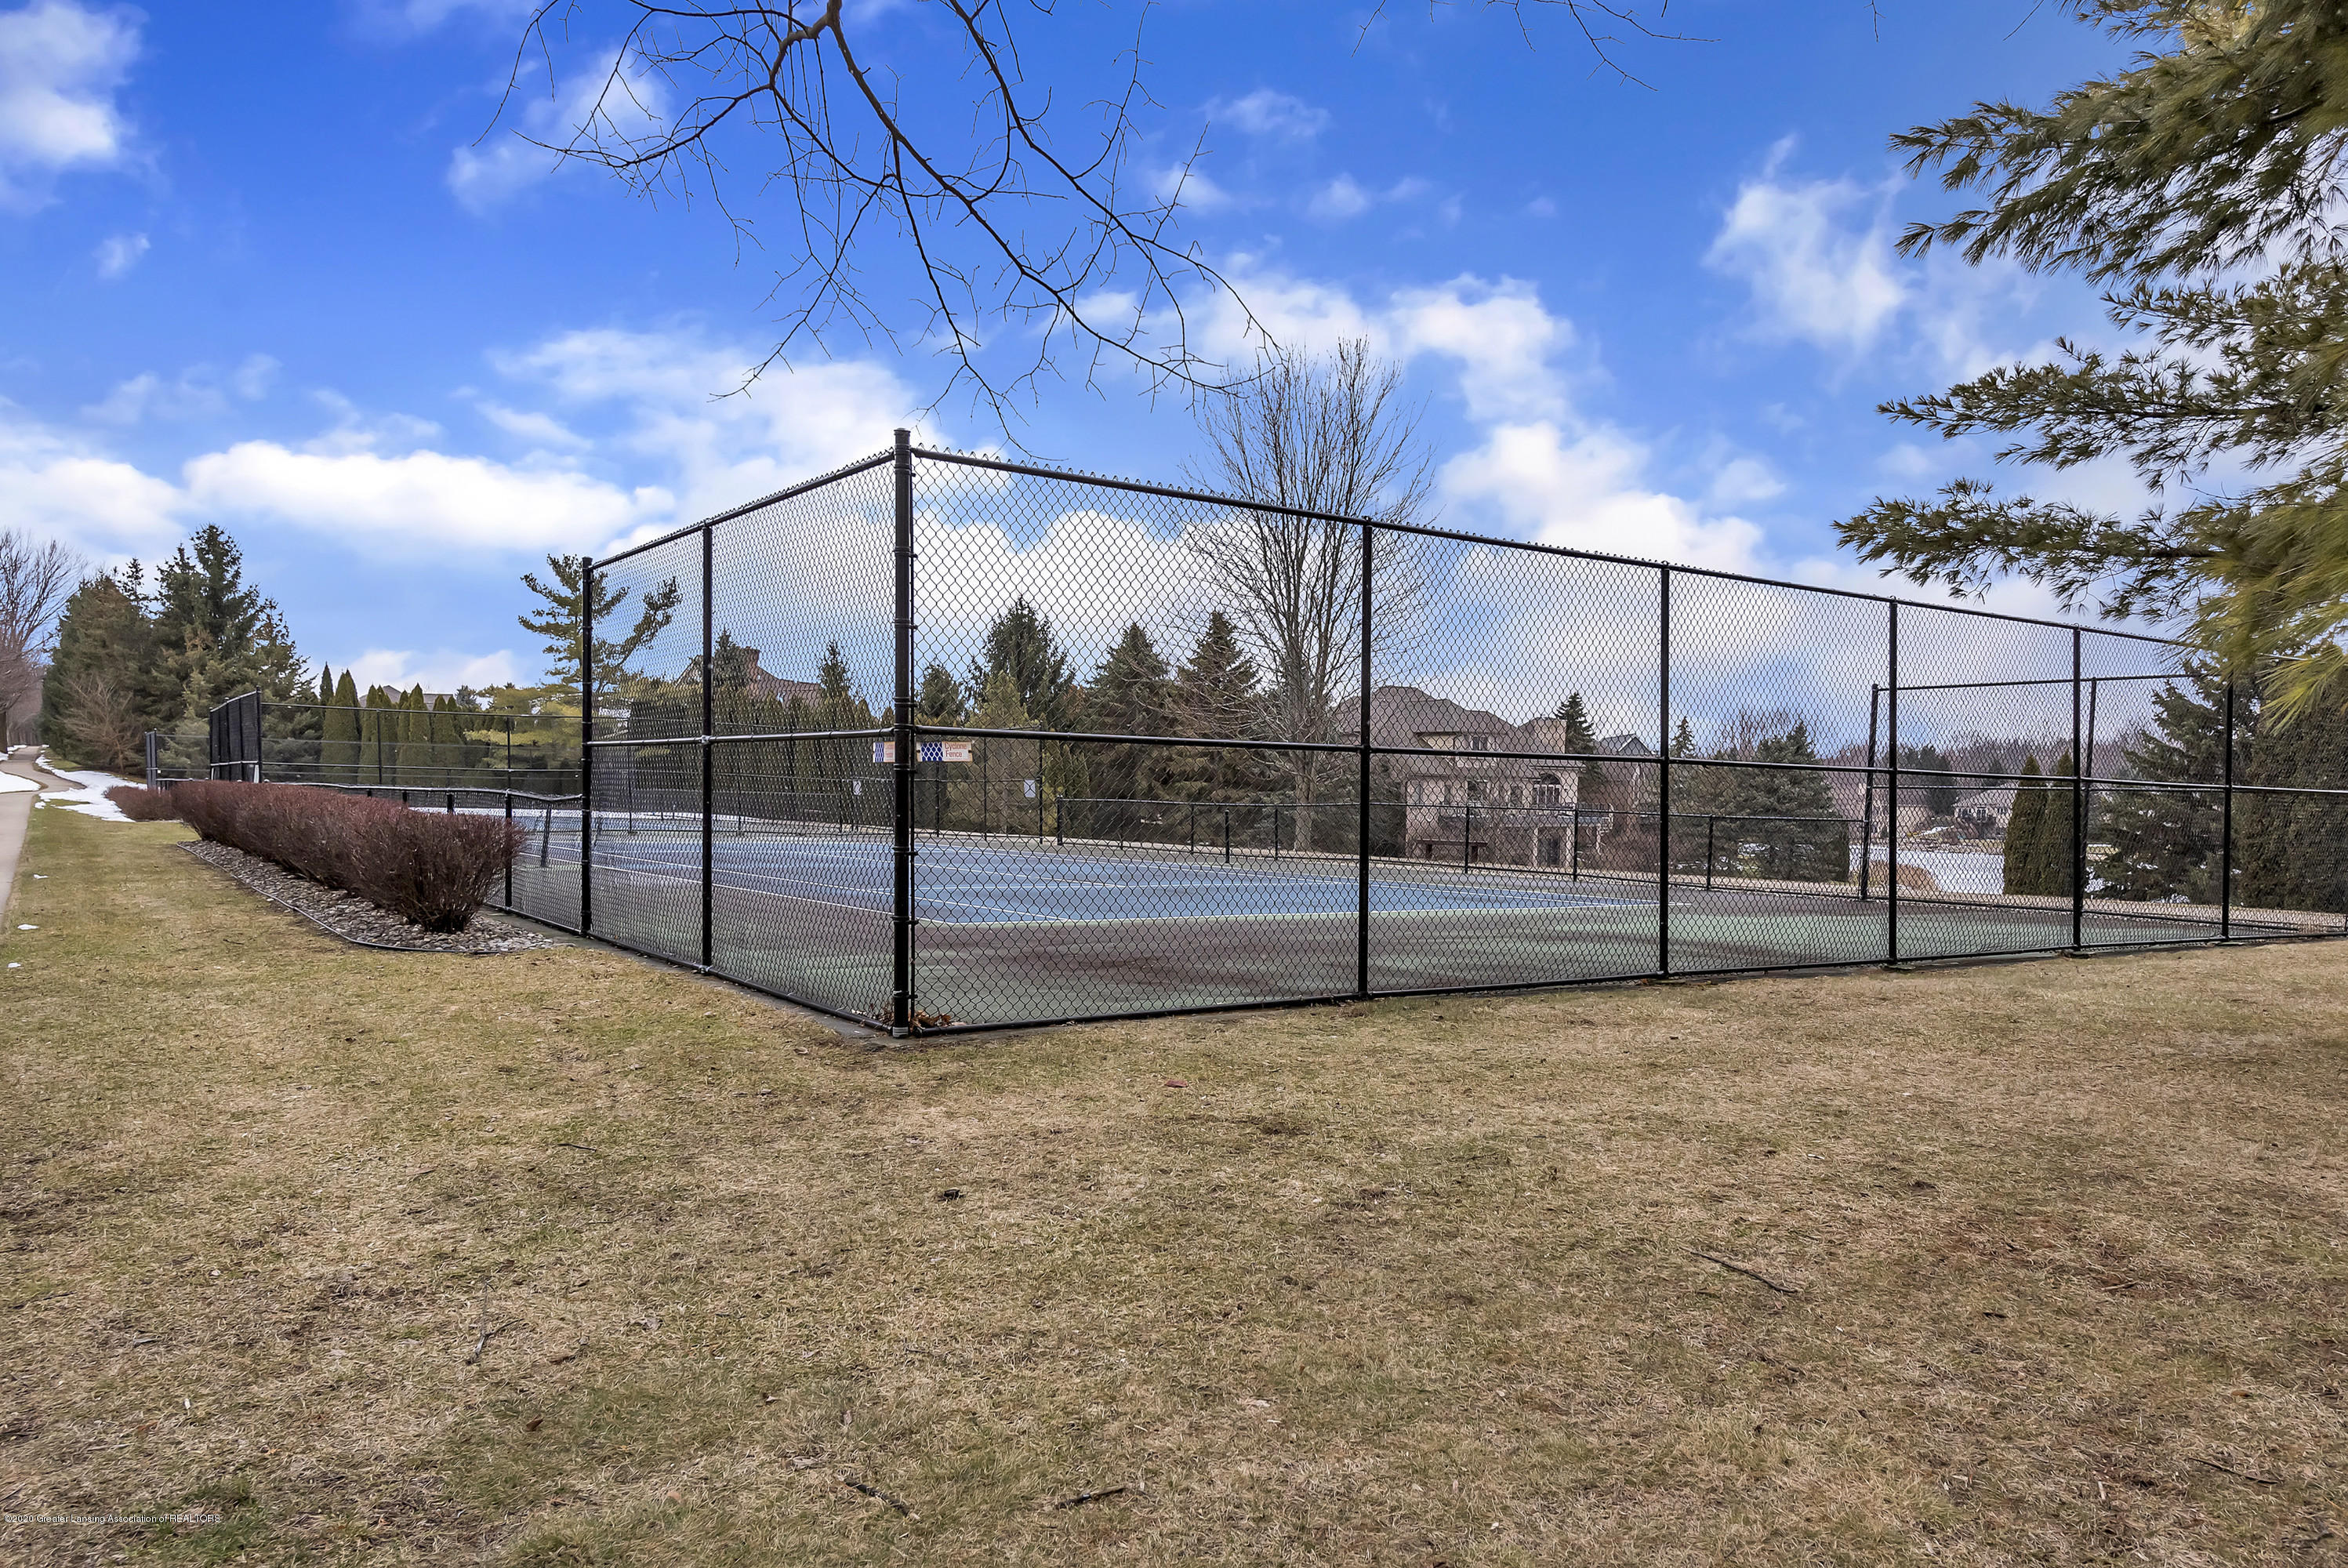 402 Shoreline Dr - Association Tennis Courts - 65